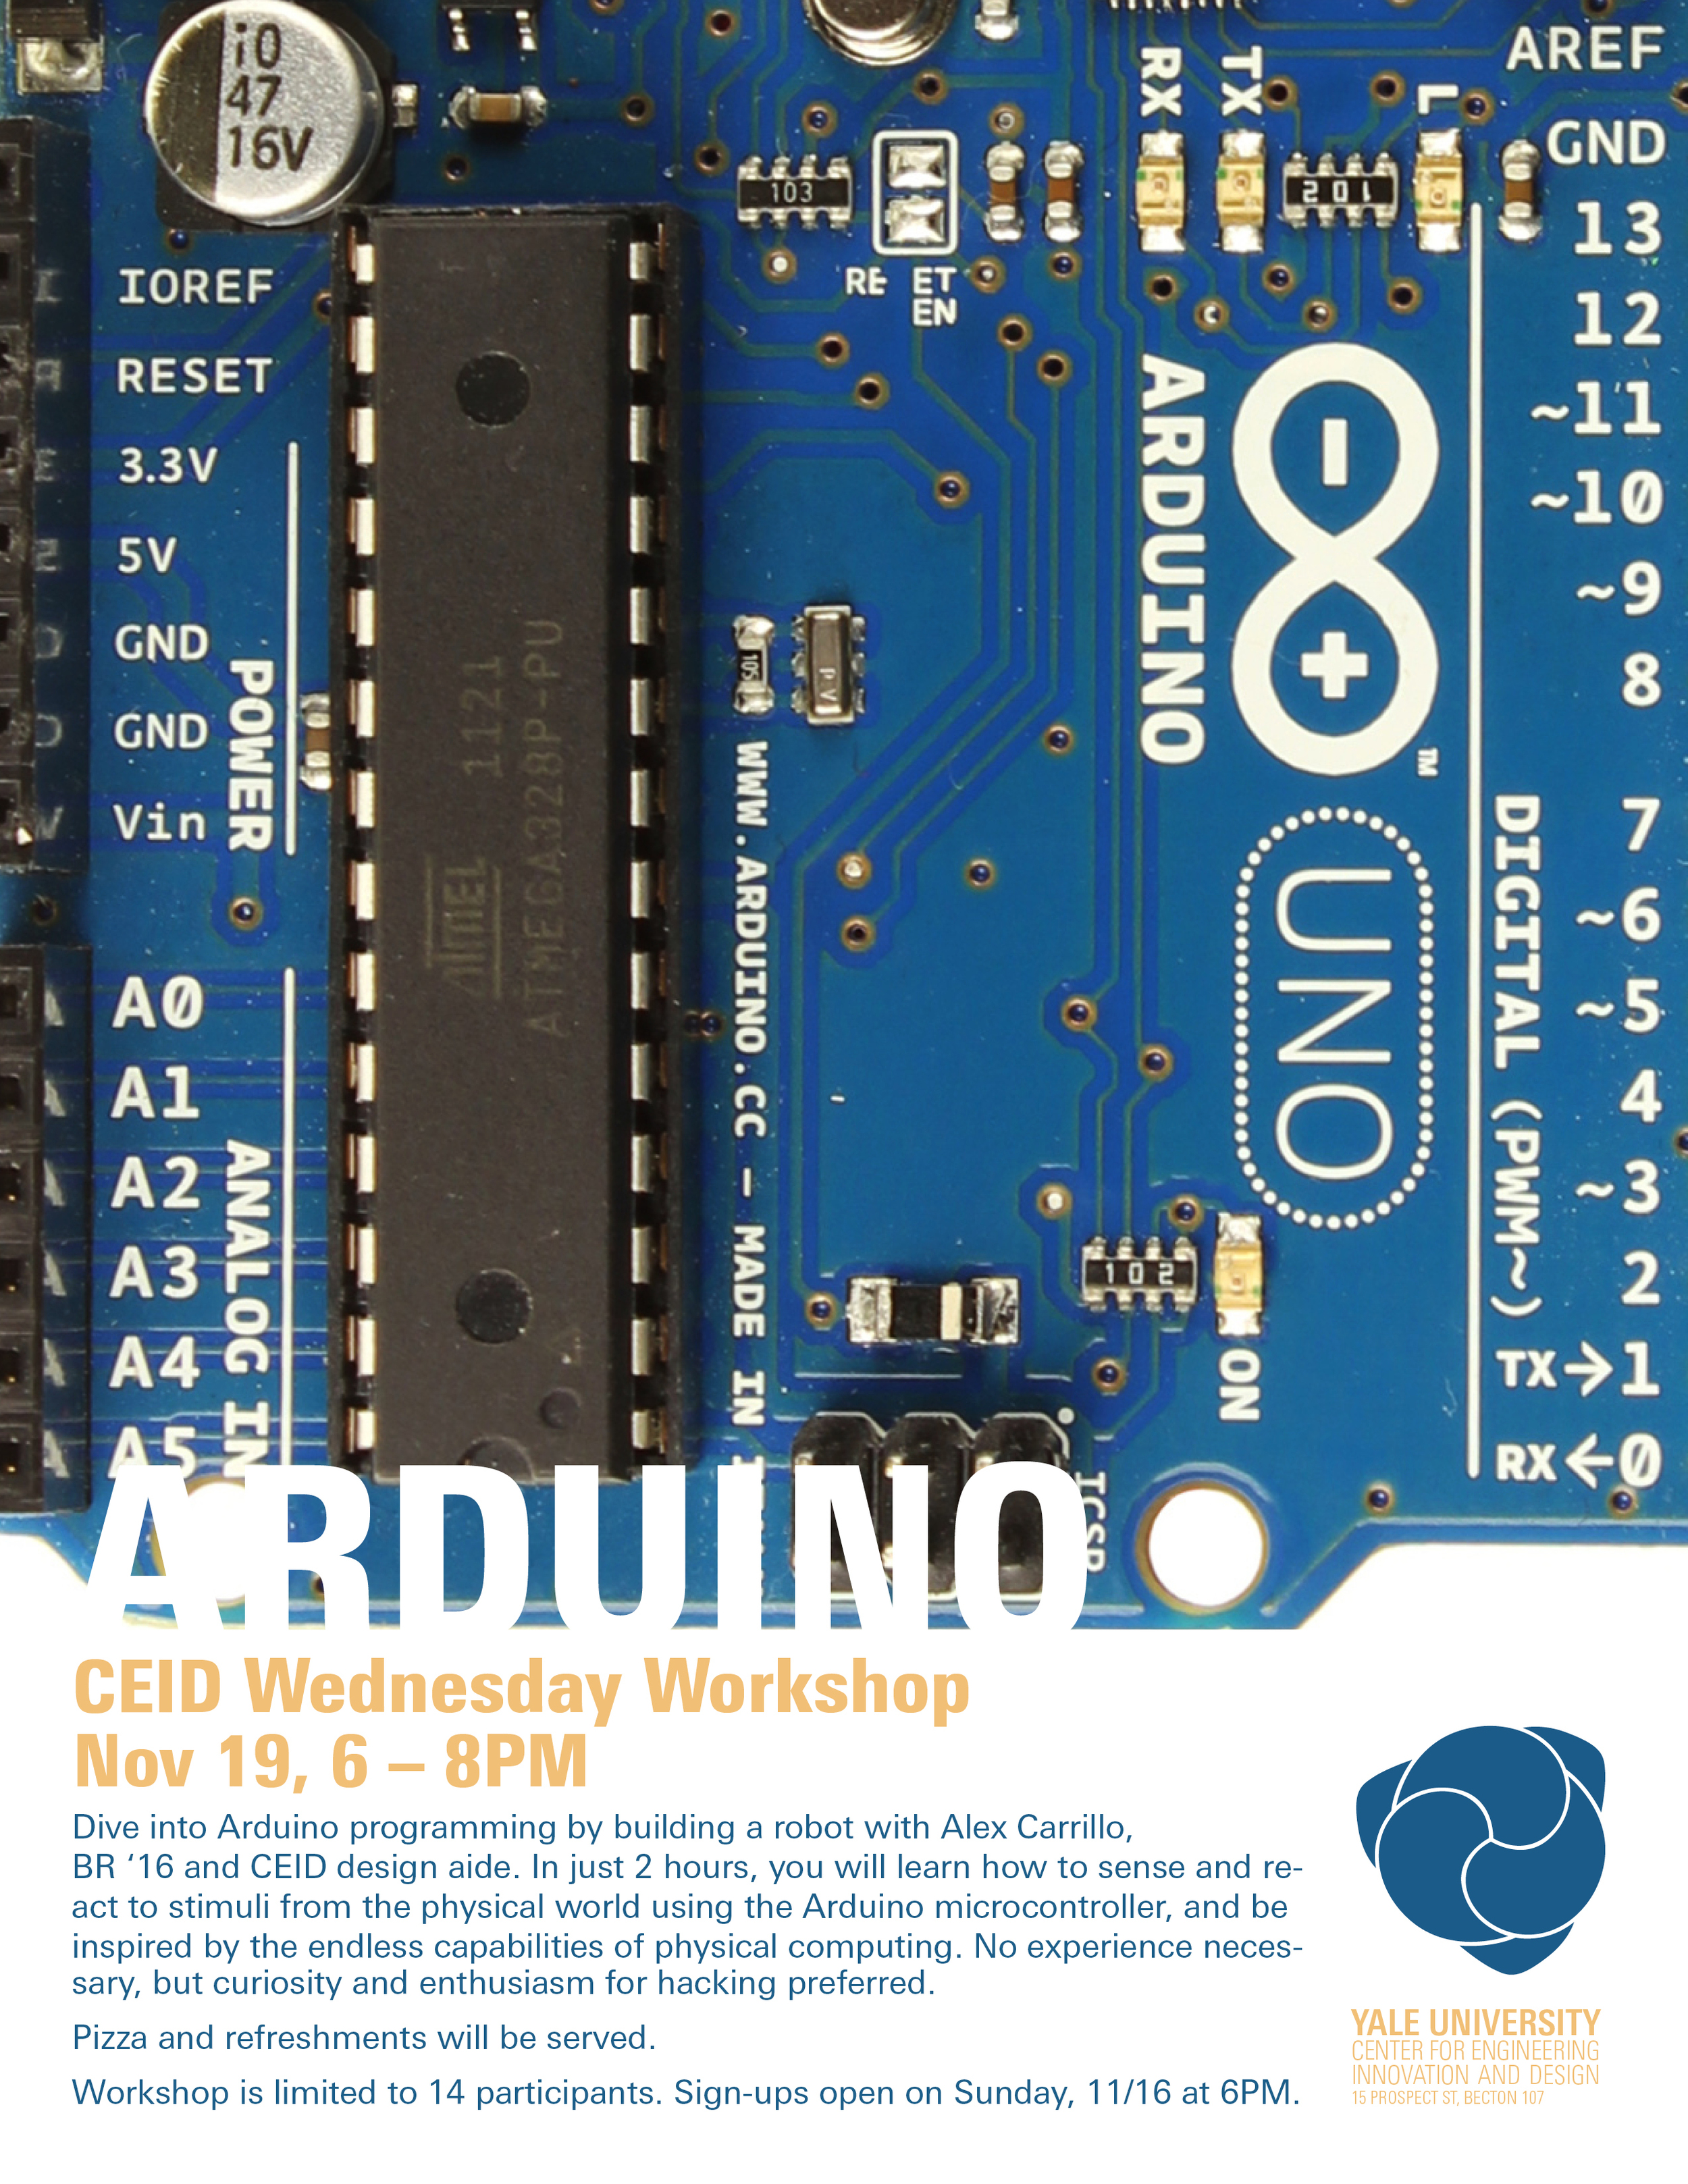 Want to learn more about Arduino? Dive into   Arduino   programming by building a robot with Alex Carrillo, BR '16 and CEID design aide. In just 2 hours, you will learn how to sense and react to stimuli from the physical world using the   Arduino   microcontroller, and be inspired by the endless capabilities of physical computing. No experience necessary, but curiosity and enthusiasm for hacking preferred.